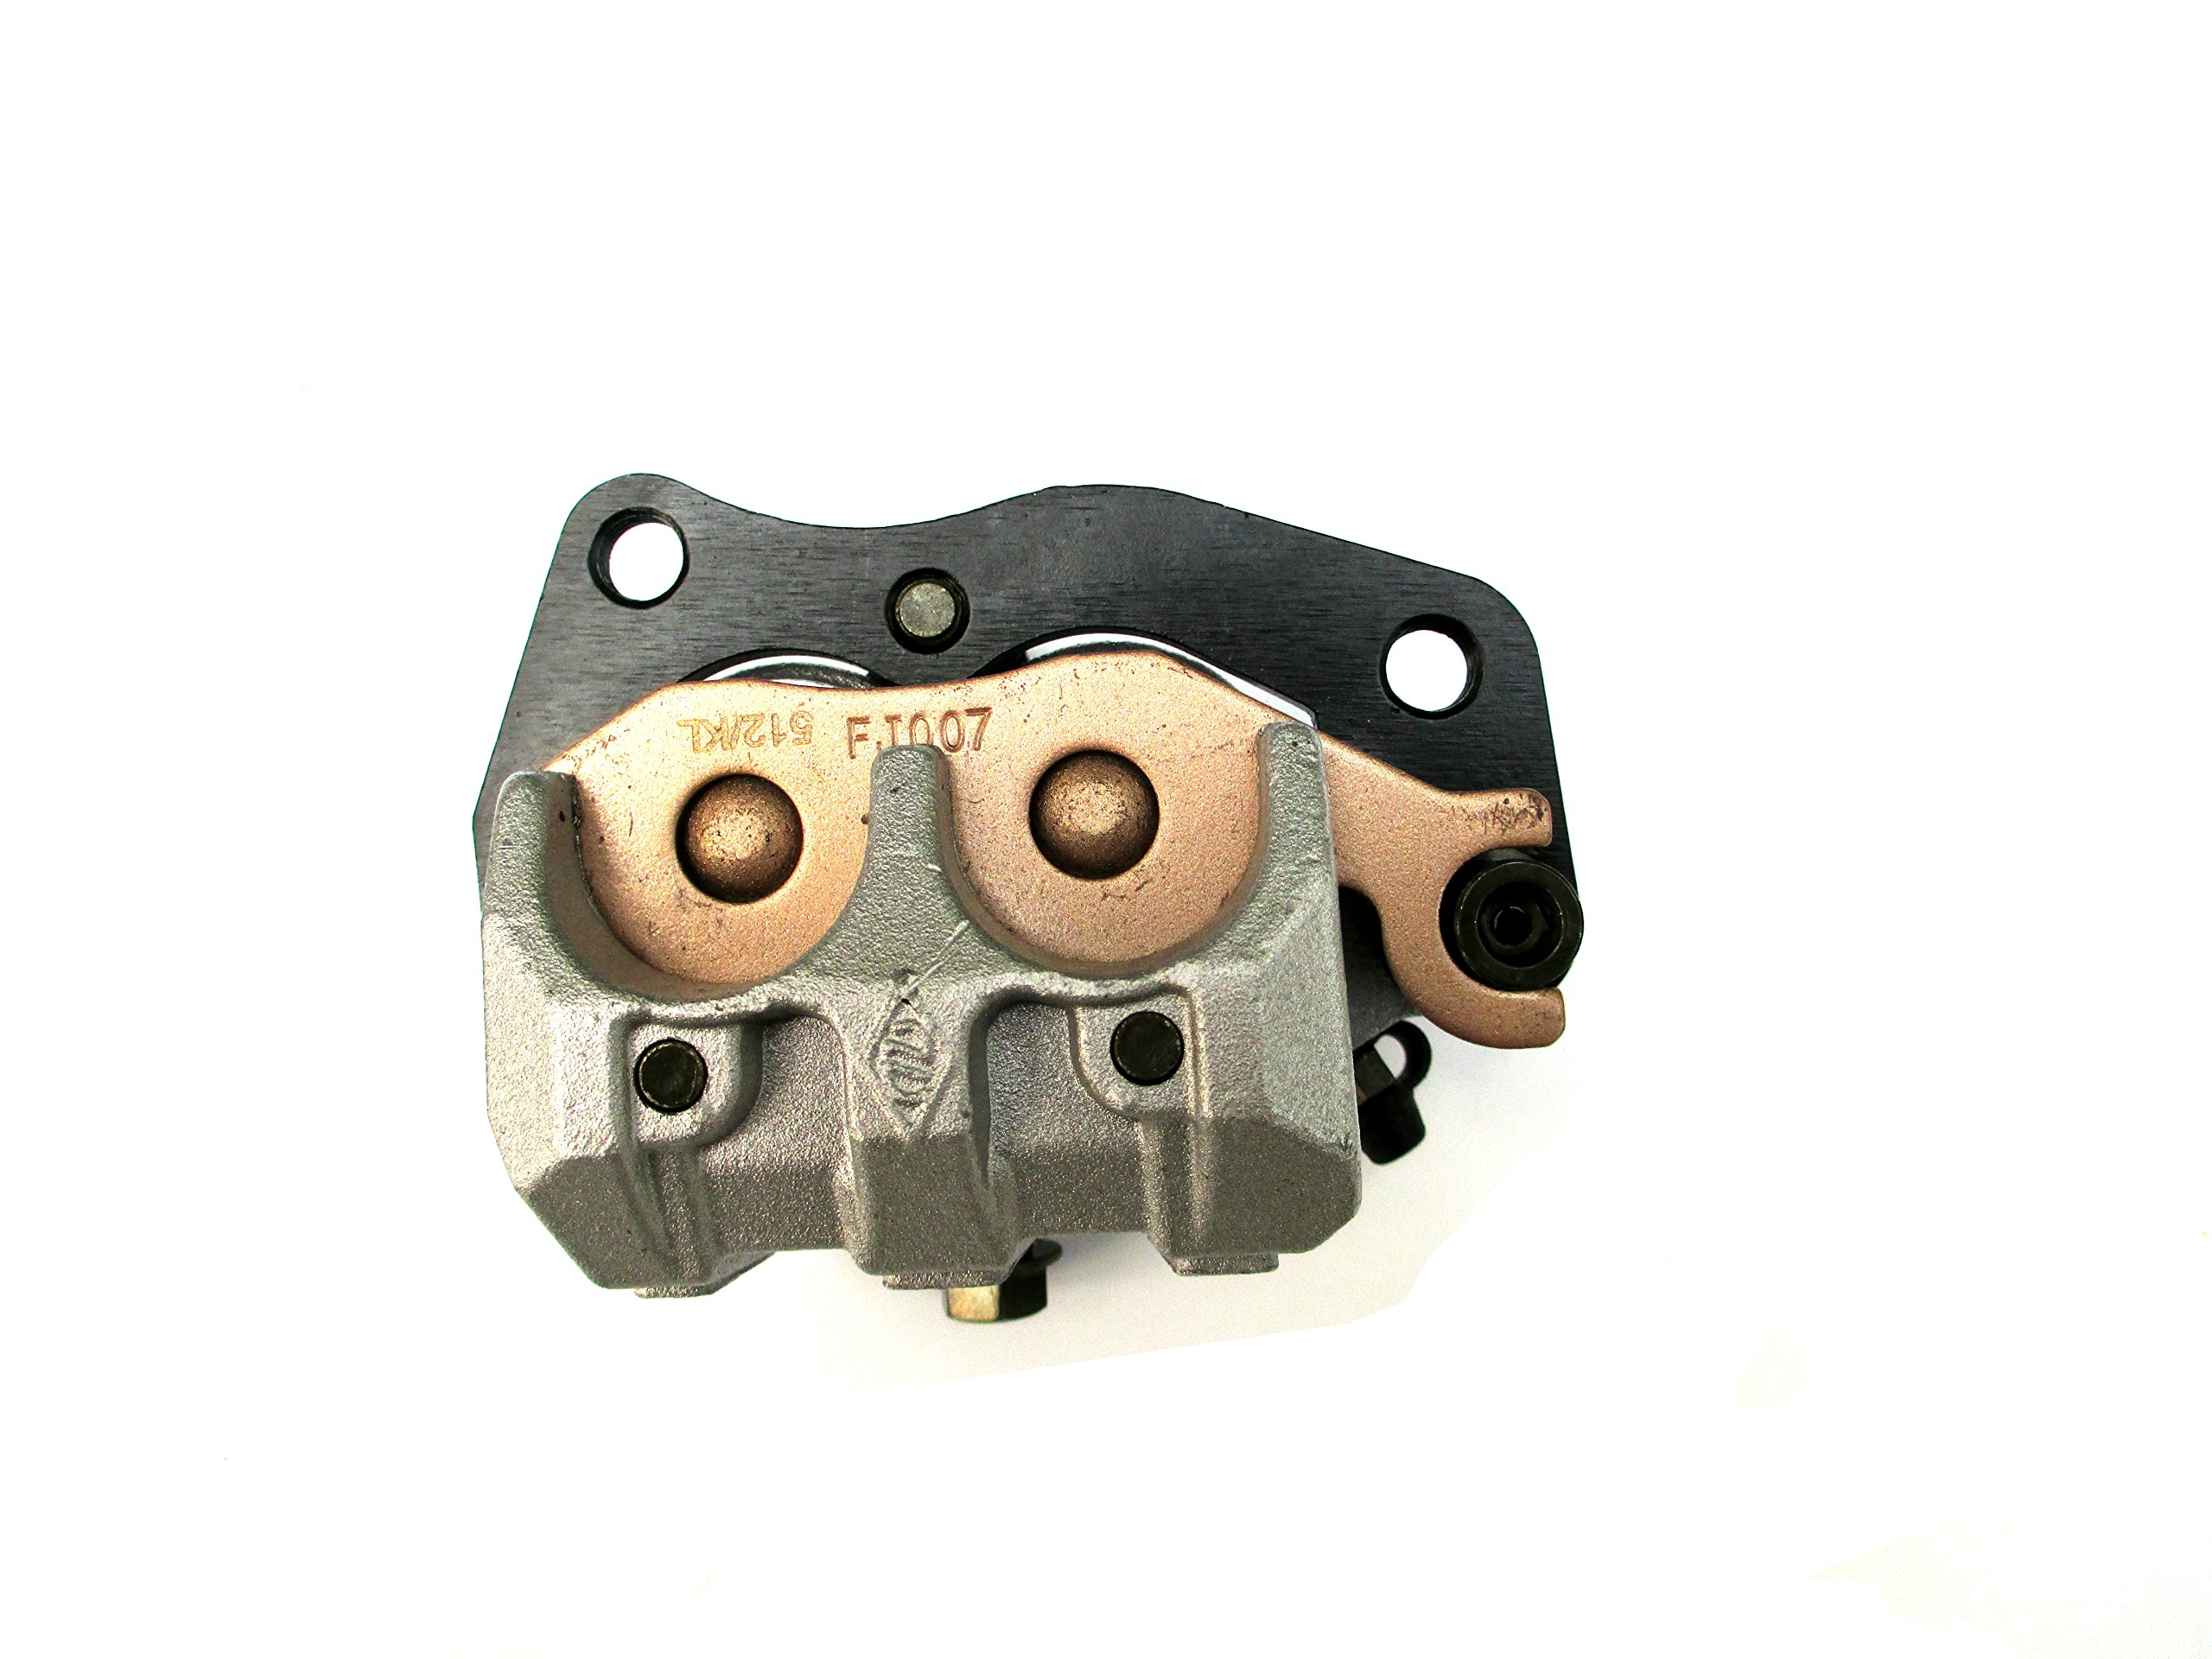 New Left & Right Front Brake Caliper FITS Yamaha Rhino Yamaha Rhino 660 YXR 450 2006 2007 2008 2009 by USonline911 (Image #2)